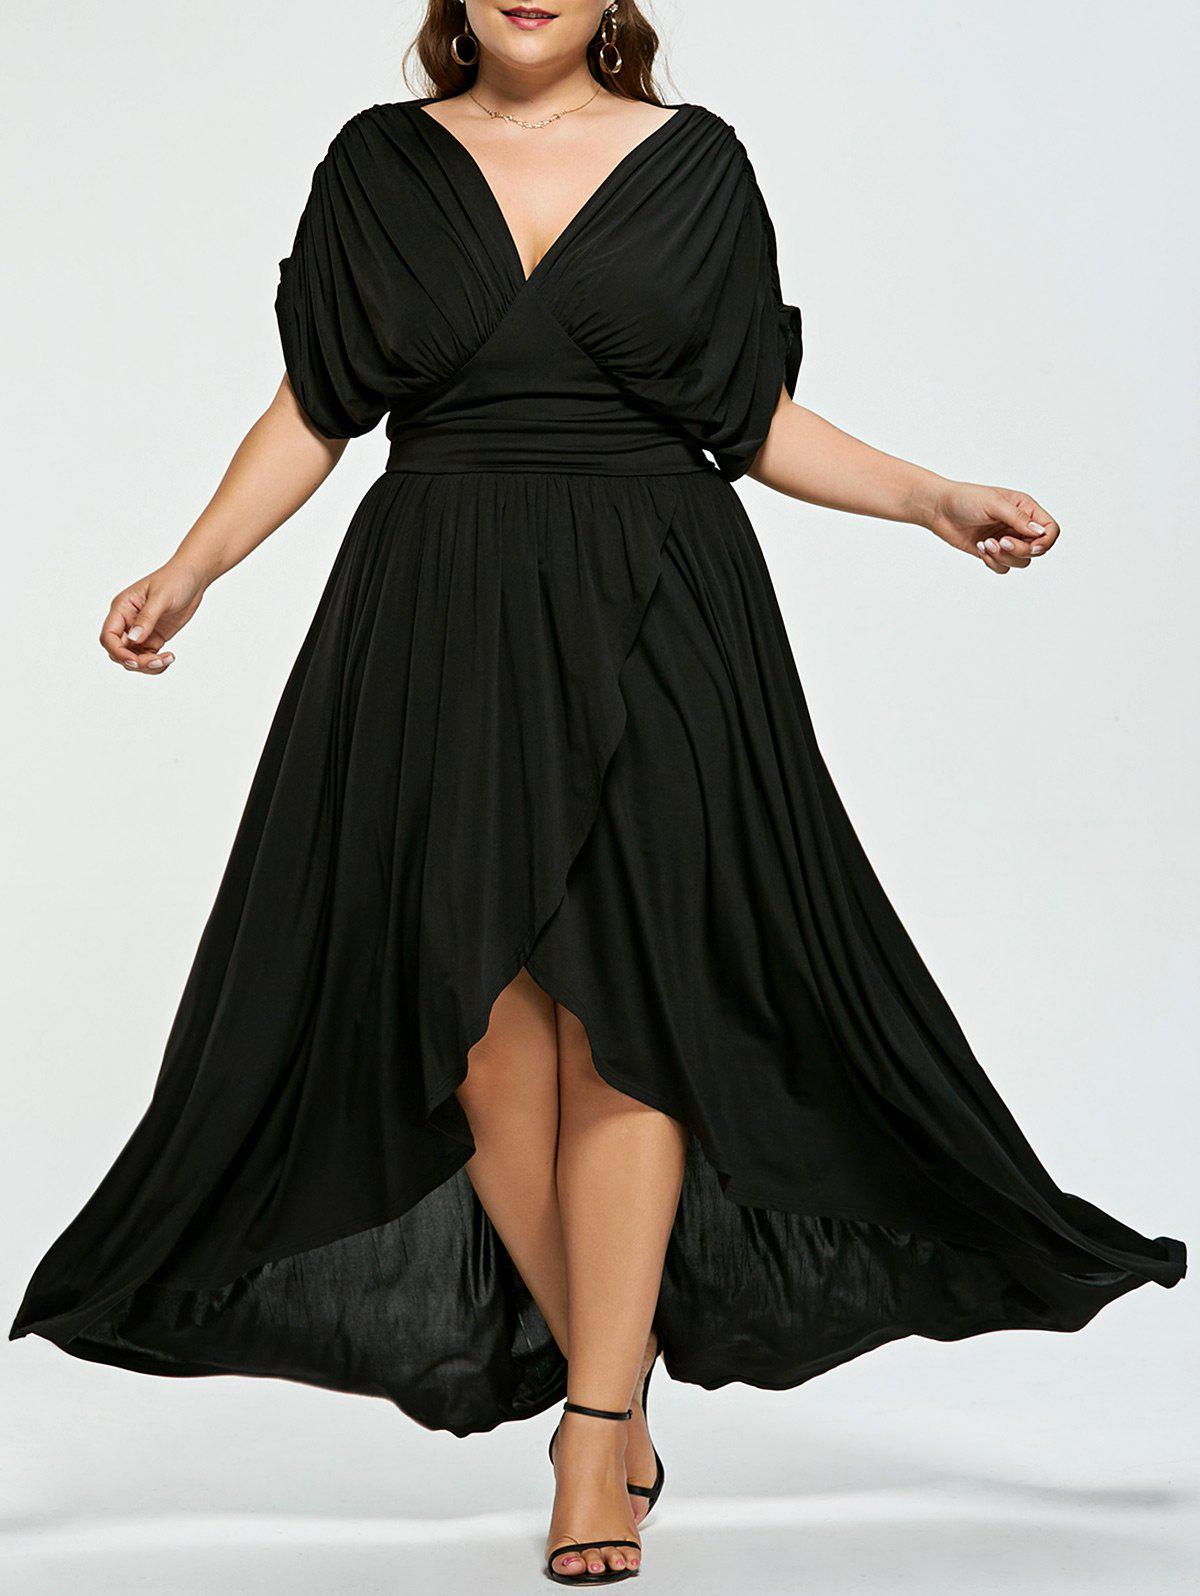 High Low Plus Size Maxi Flowy DressWOMEN<br><br>Size: 5XL; Color: BLACK; Style: Cute; Material: Polyester; Silhouette: Straight; Dresses Length: Floor-Length; Neckline: V-Neck; Sleeve Length: Short Sleeves; Pattern Type: Solid; With Belt: No; Season: Spring,Summer; Weight: 0.6700kg; Package Contents: 1 x Dress;